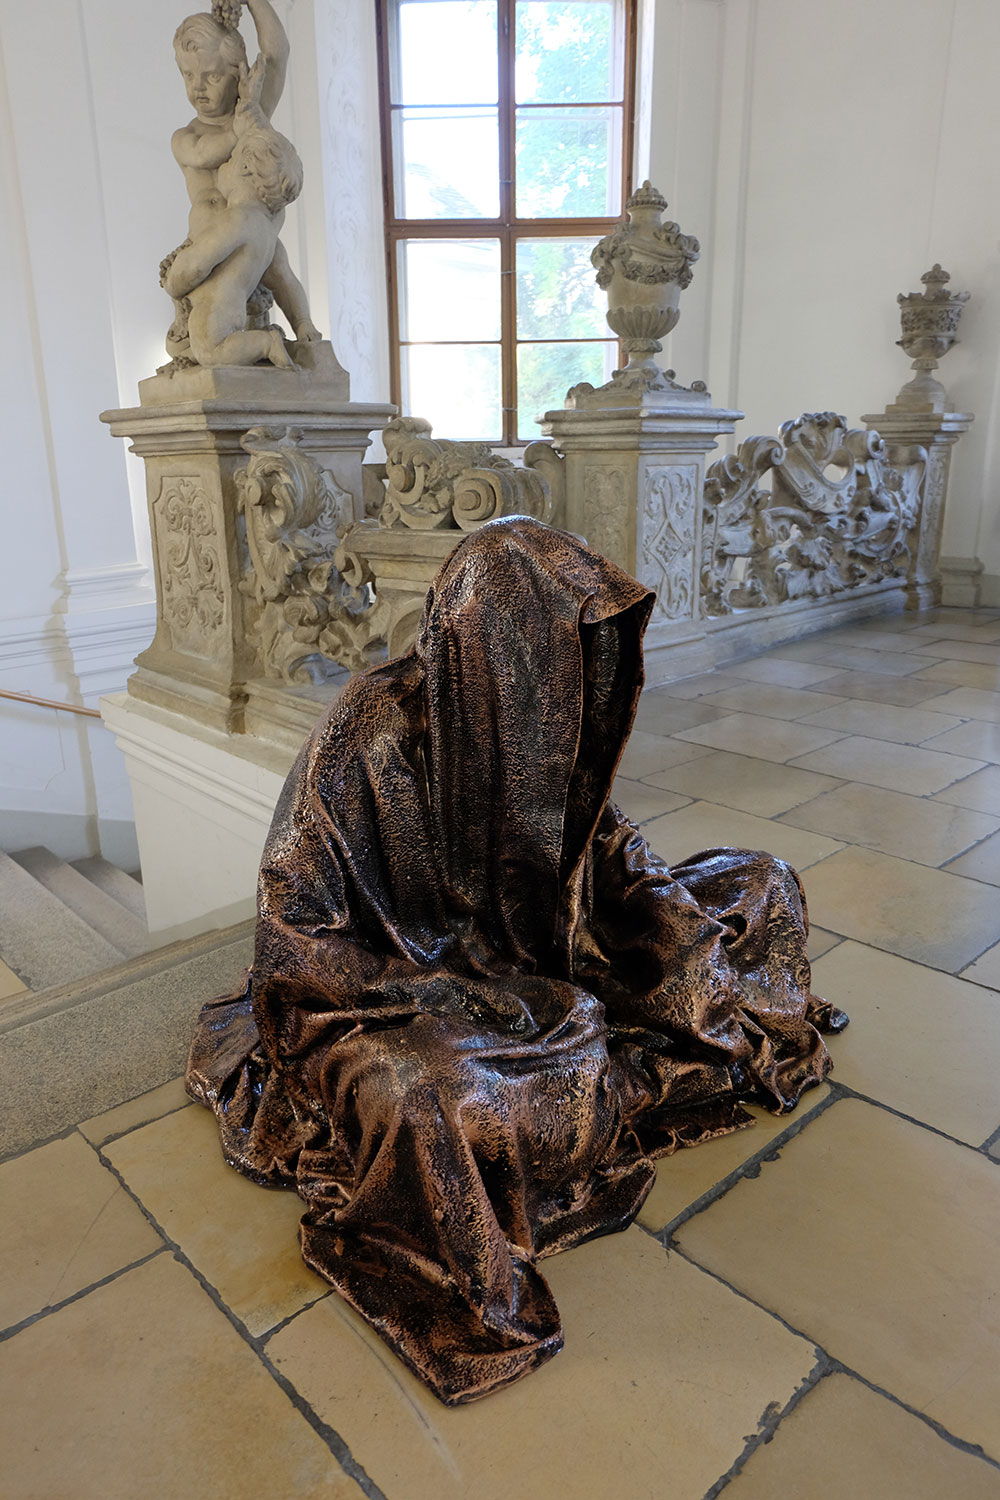 konstante-art-fair-vienna-gartenpaalais-schoenborn-volkskundemuseum-guardians-of-time-manfred-kili-kielnhofer-contemporary-art-arts-design-sculpture-statue-3272